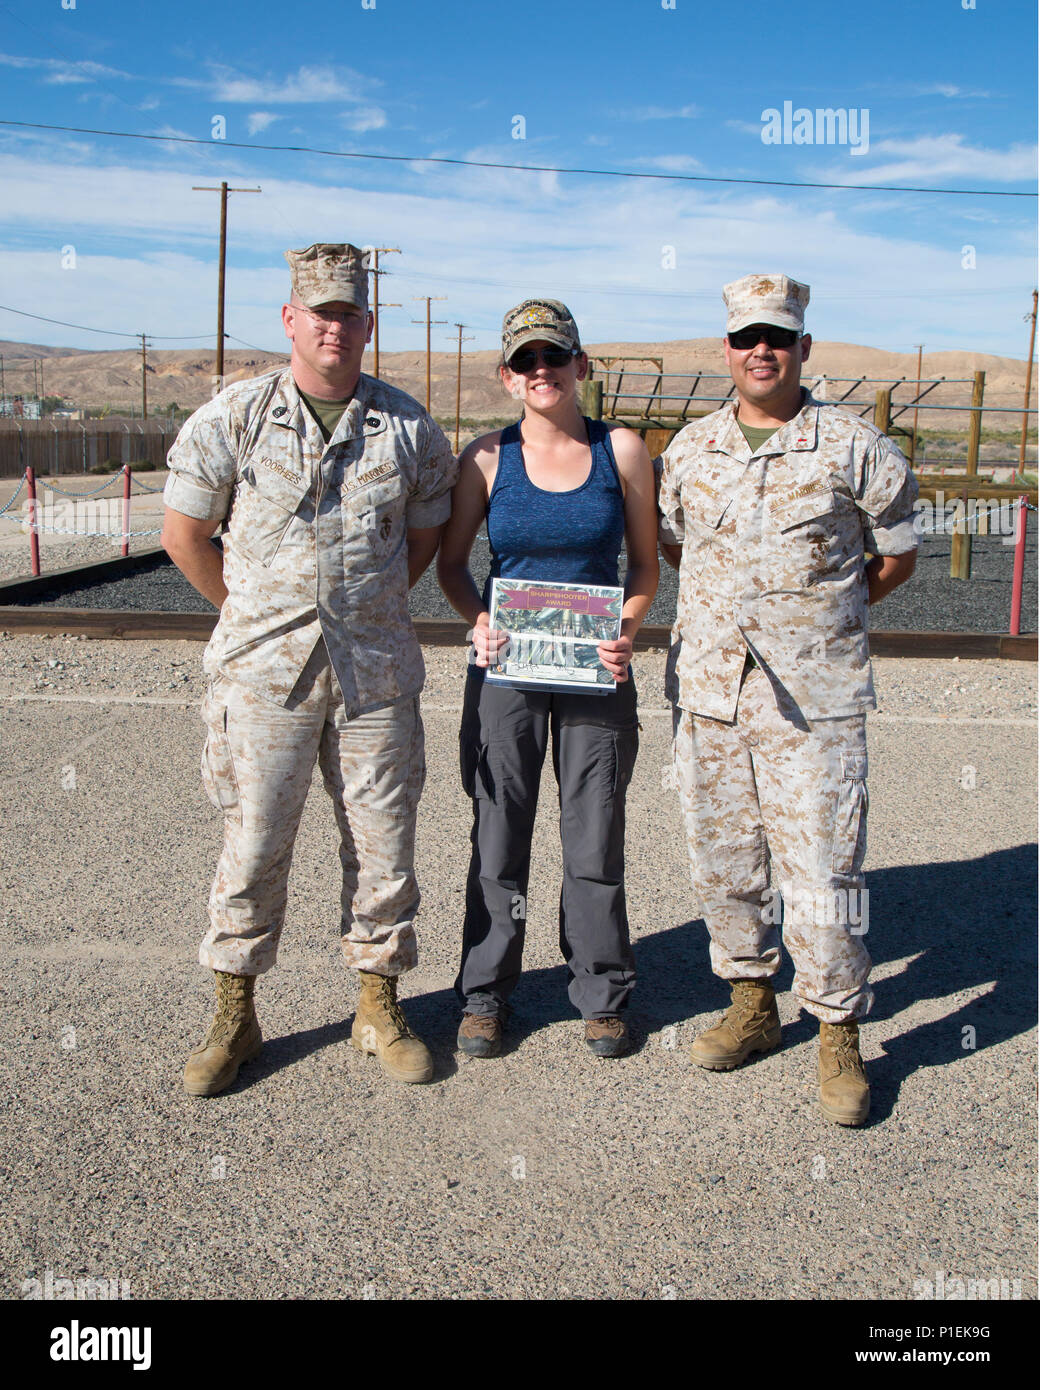 Jamie Teale poses with Gunnery Sgt. Michael Voorhees and Chief Warrant Officer Jose Maynes as the winner of both the 'Gung-ho' and the shooting competition awards during Jane Wayne Day held aboard Marine Corps Logistics Base Barstow, Calif., Oct. 14. Maynes and Voorhees coordinated the event which allowed military spouses the opportunity to get a taste of military life. - Stock Image